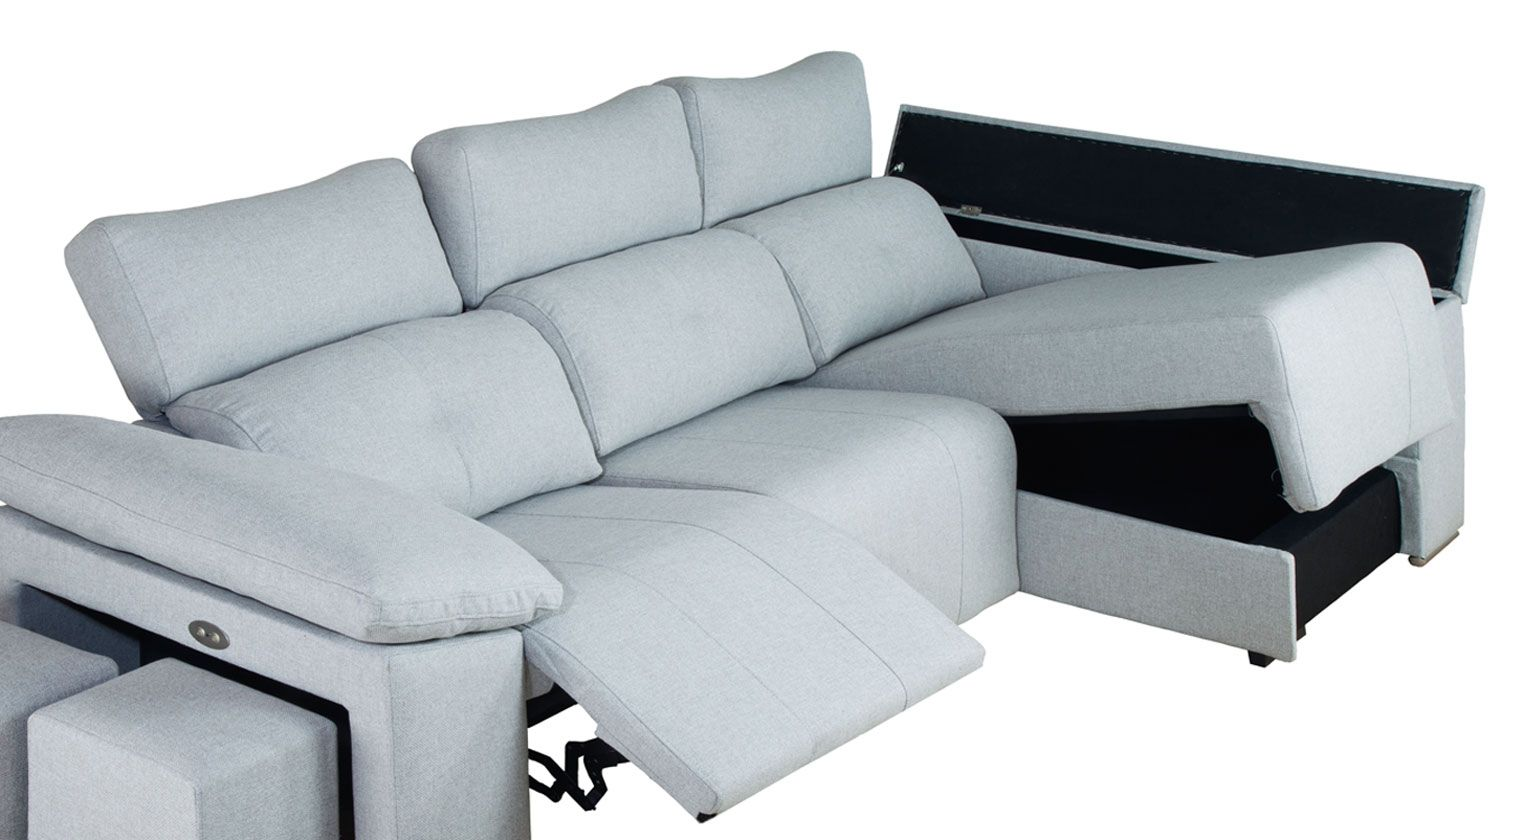 tumb-Chaise-Longue-Relax-CALIPSO-4